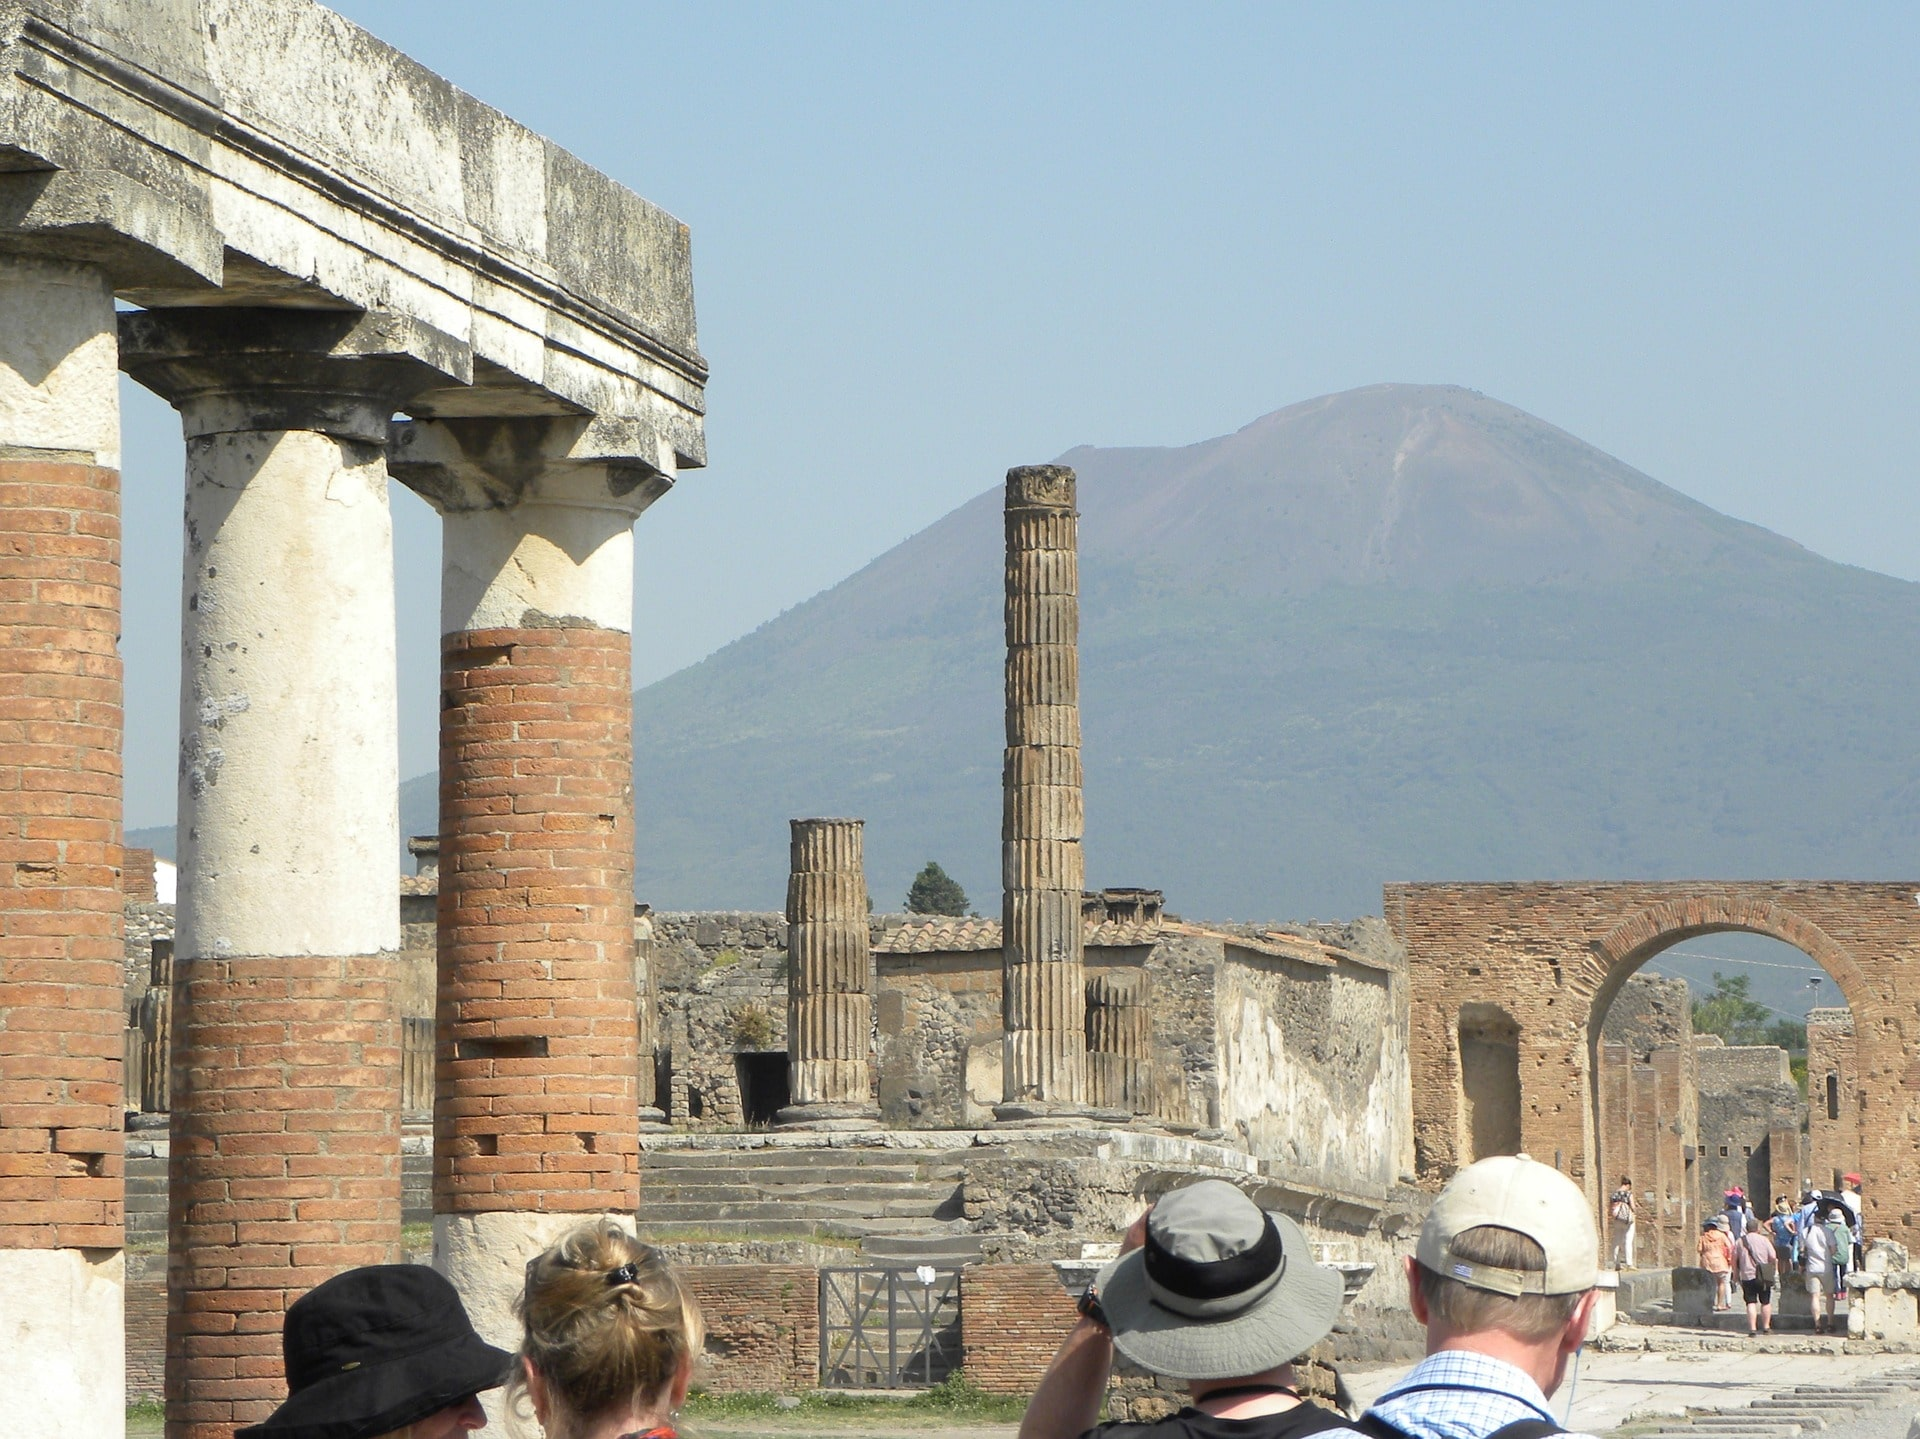 Pompeii is a cool (but haunting) place to visit in Italy